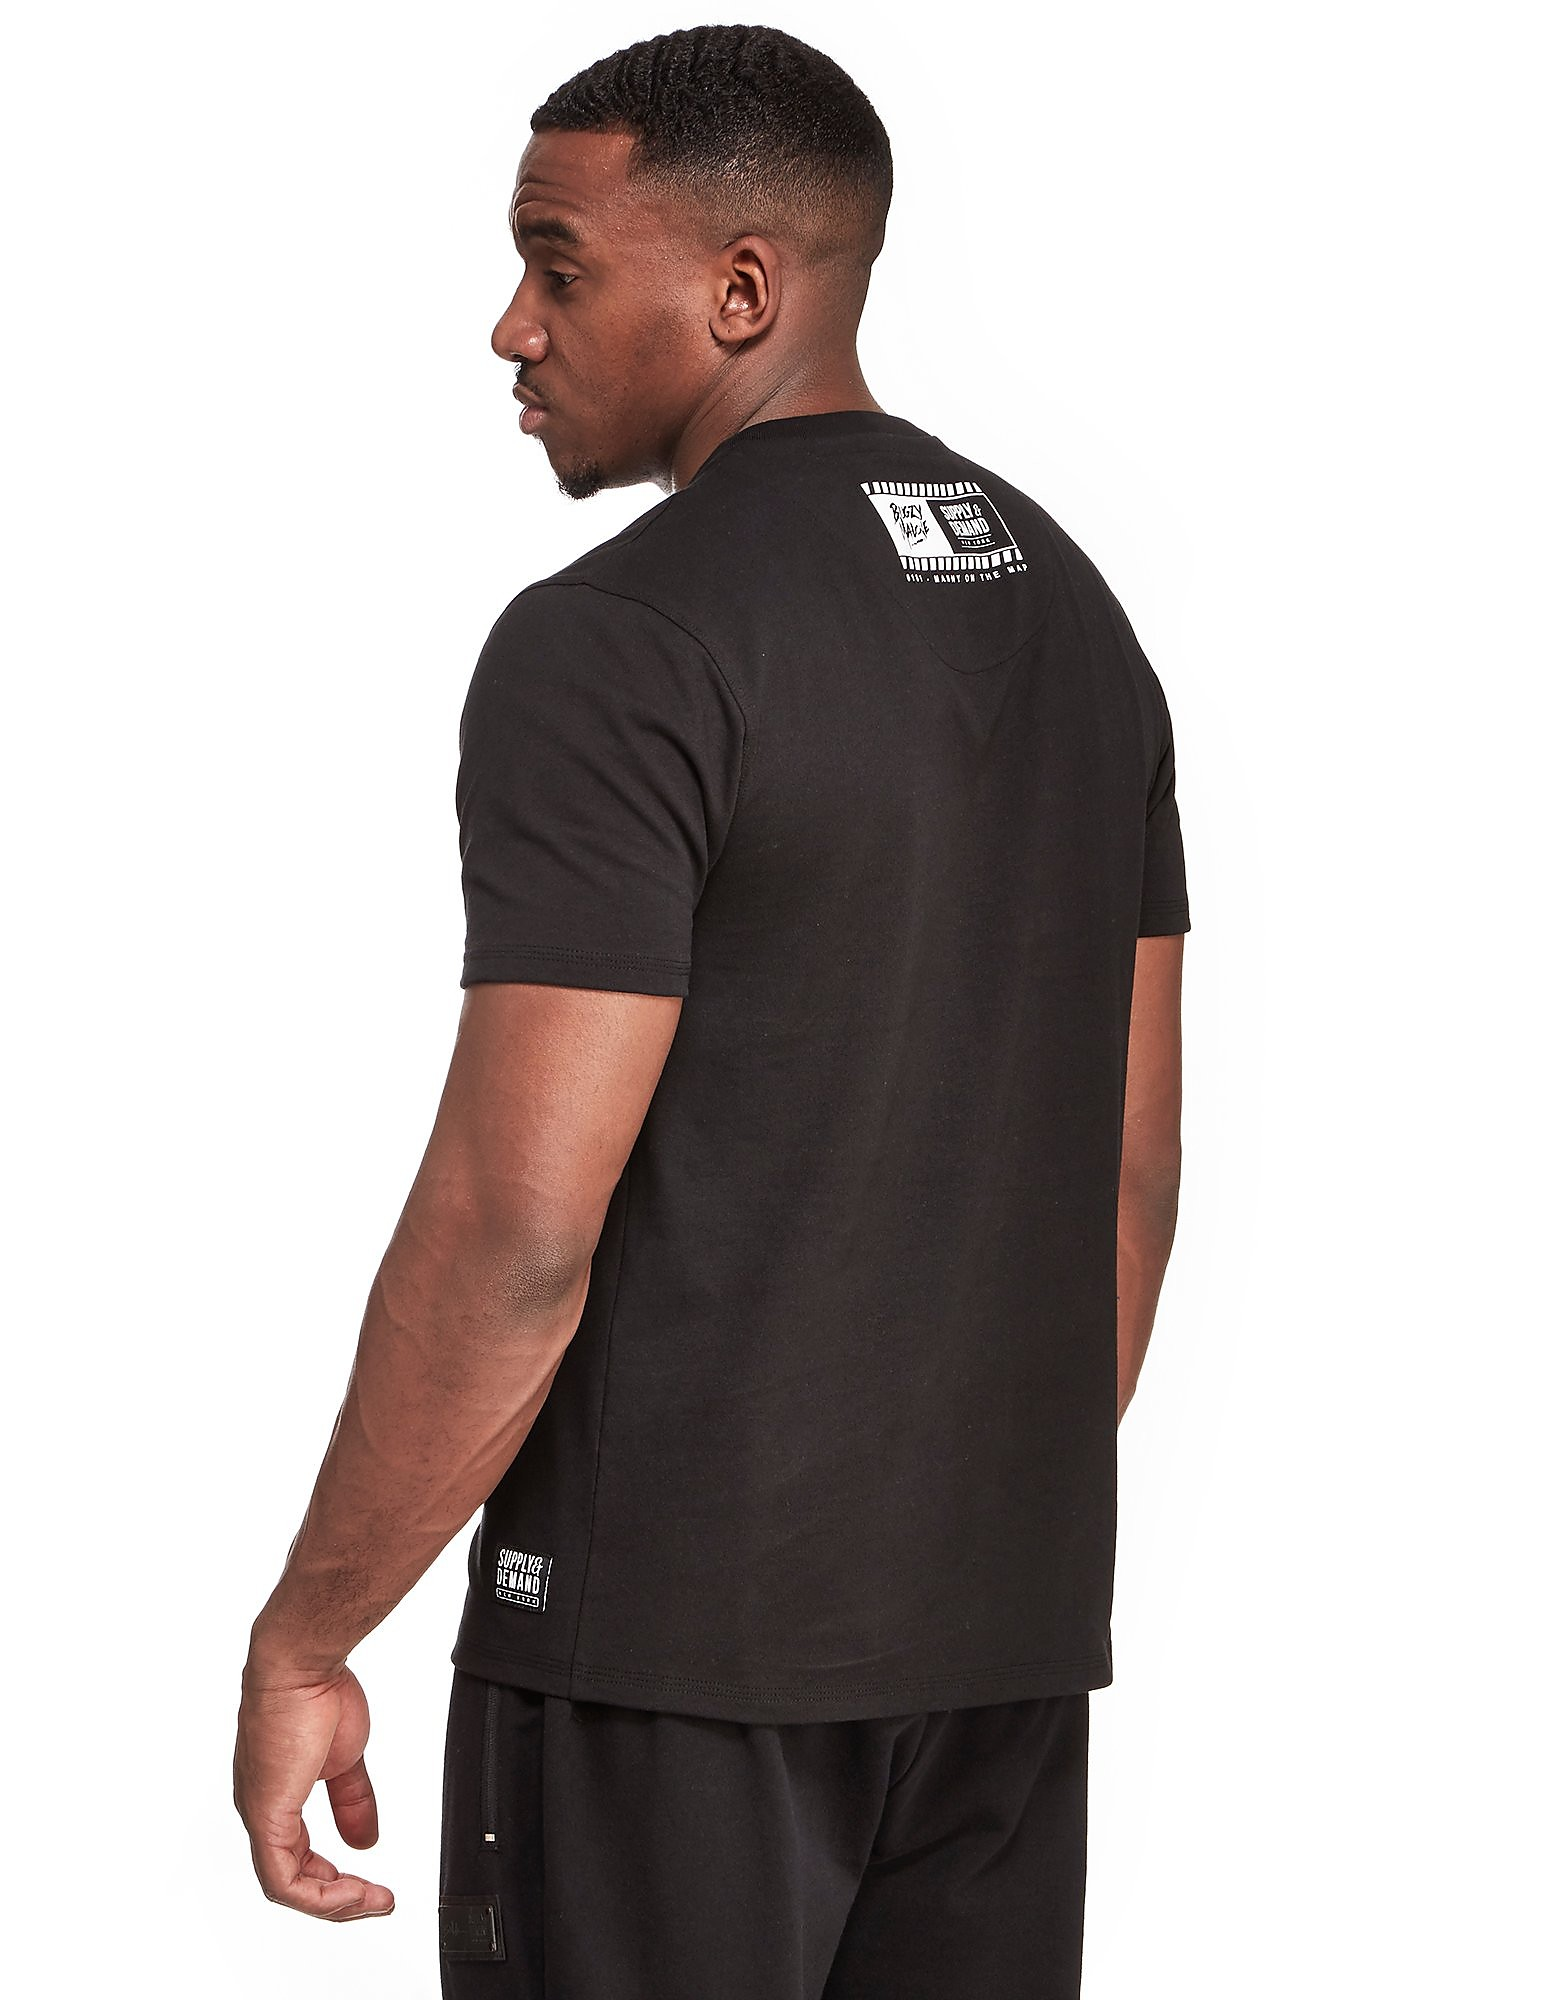 Supply & Demand x Bugzy Malone Rose Block T-Shirt